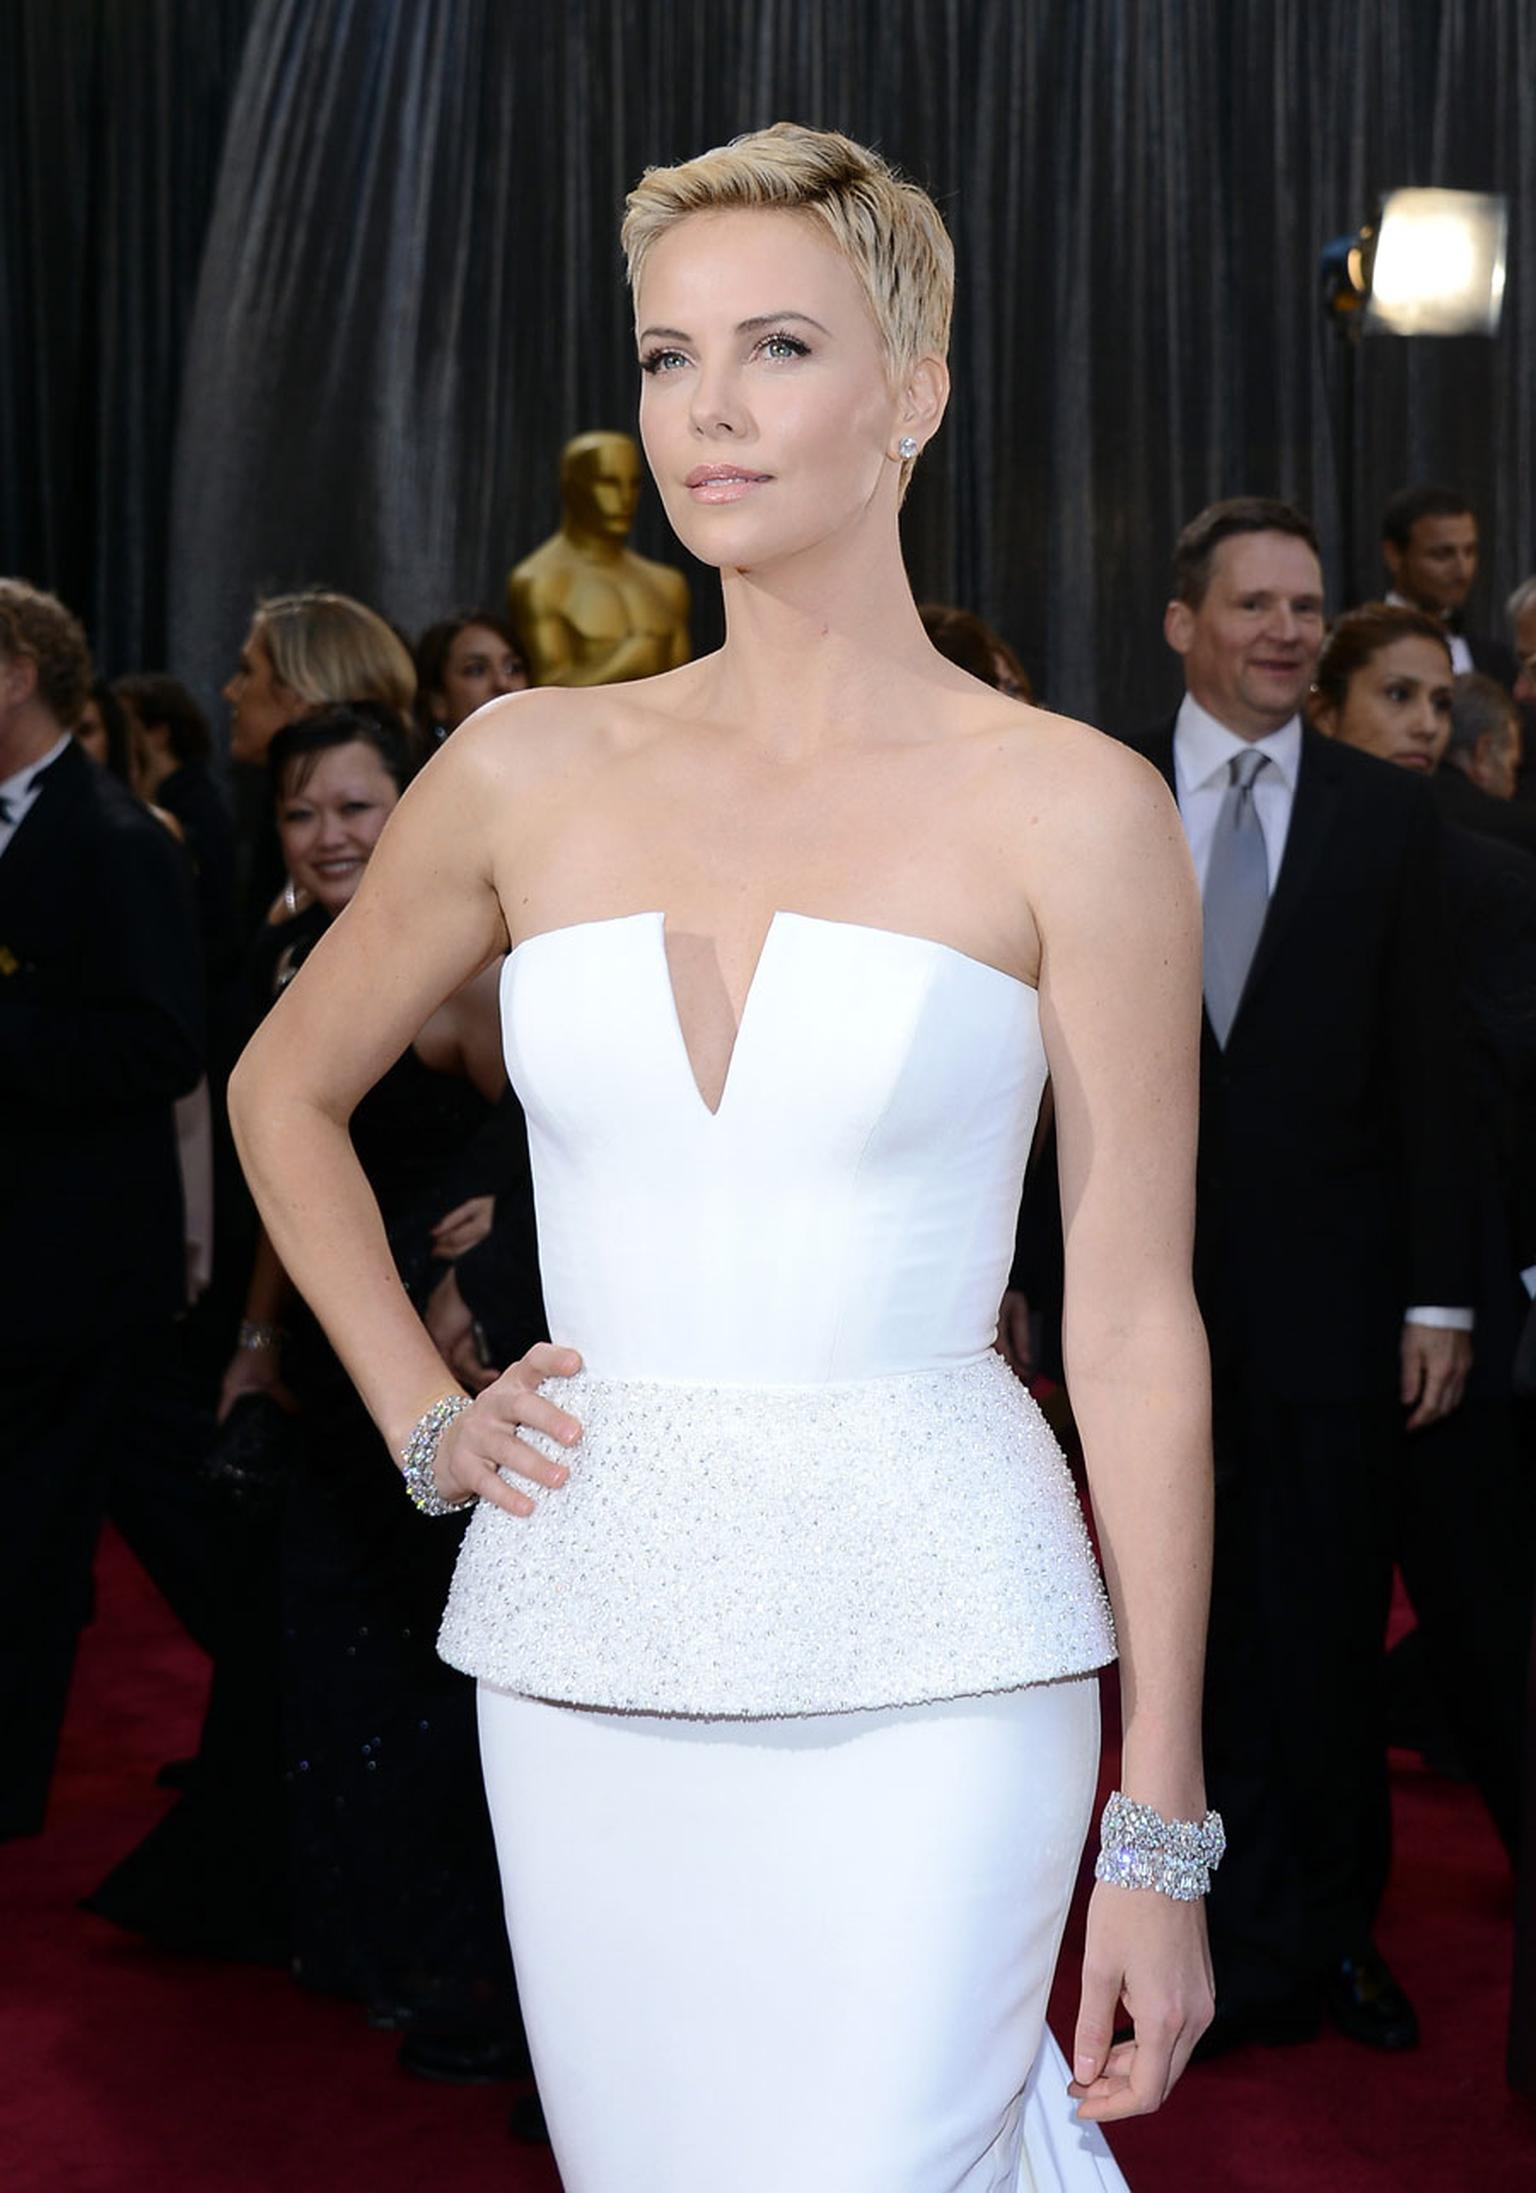 Oscars-Harry-Winston-CHARLIZE-THERON.jpg